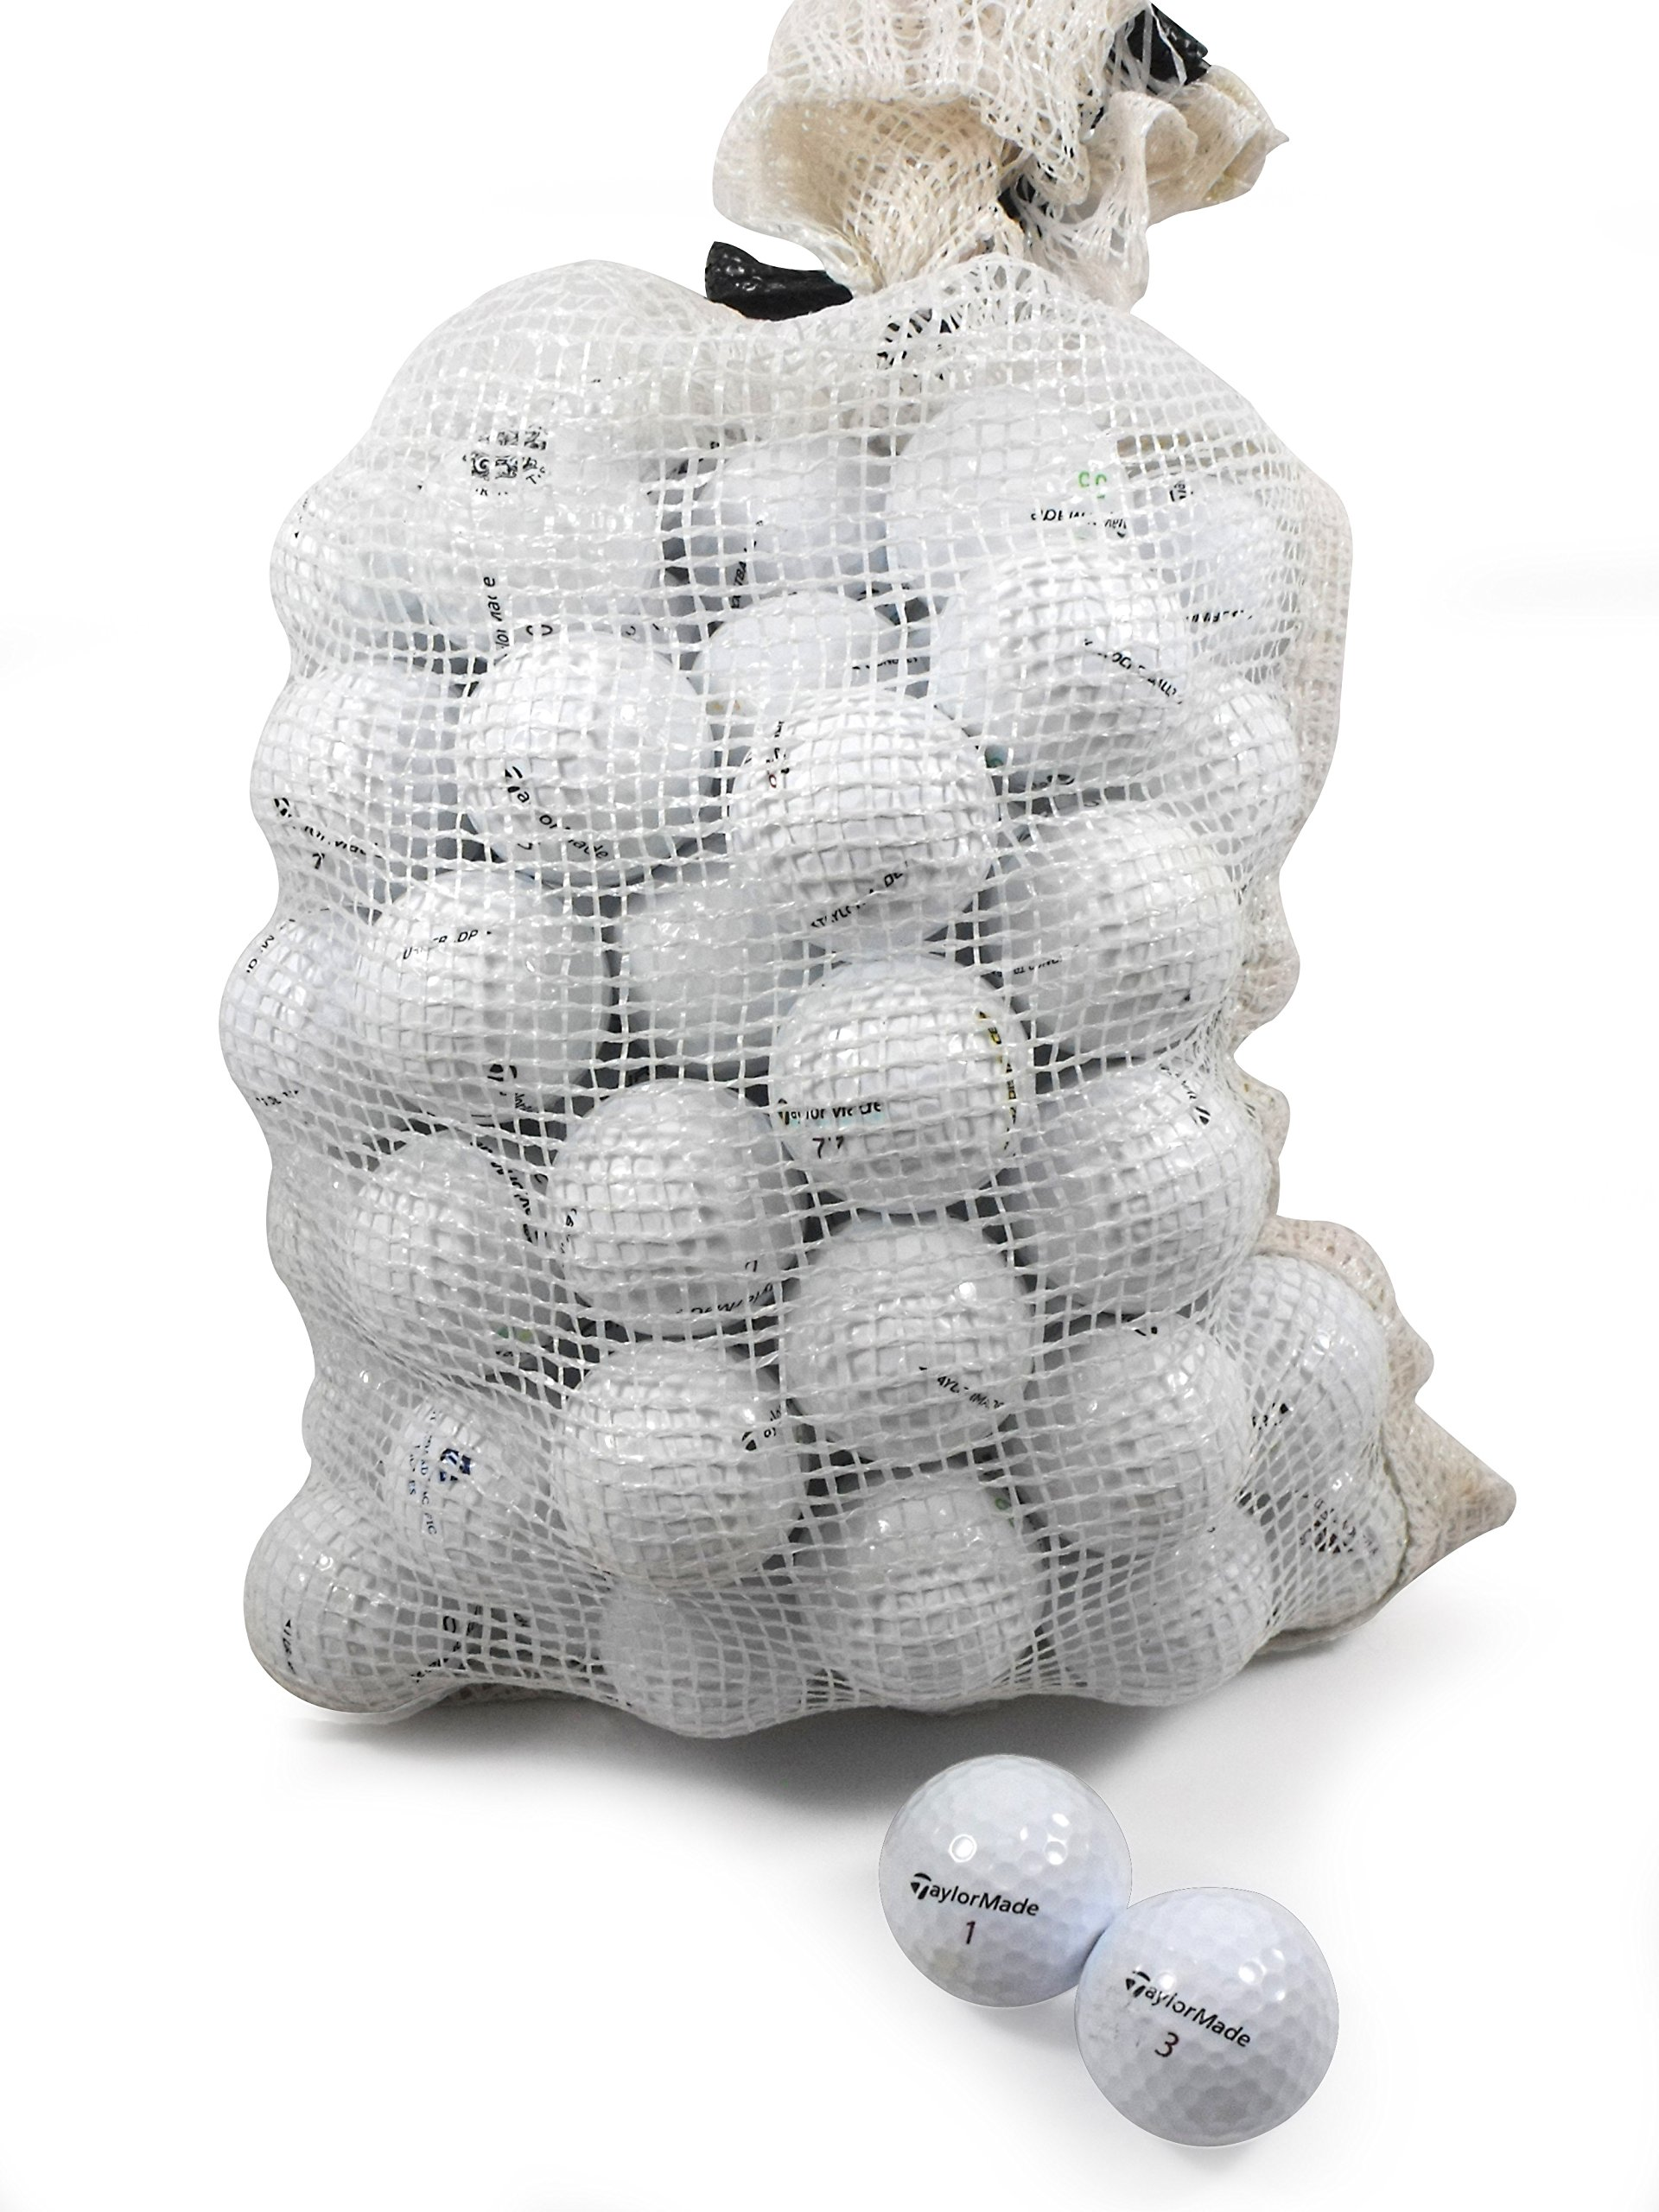 Recycled Used Golf Balls Cleaned - Taylormade B/C Grade Golf Balls 72 Balls Assorted Models in Onion Mesh Bag by TaylorMade